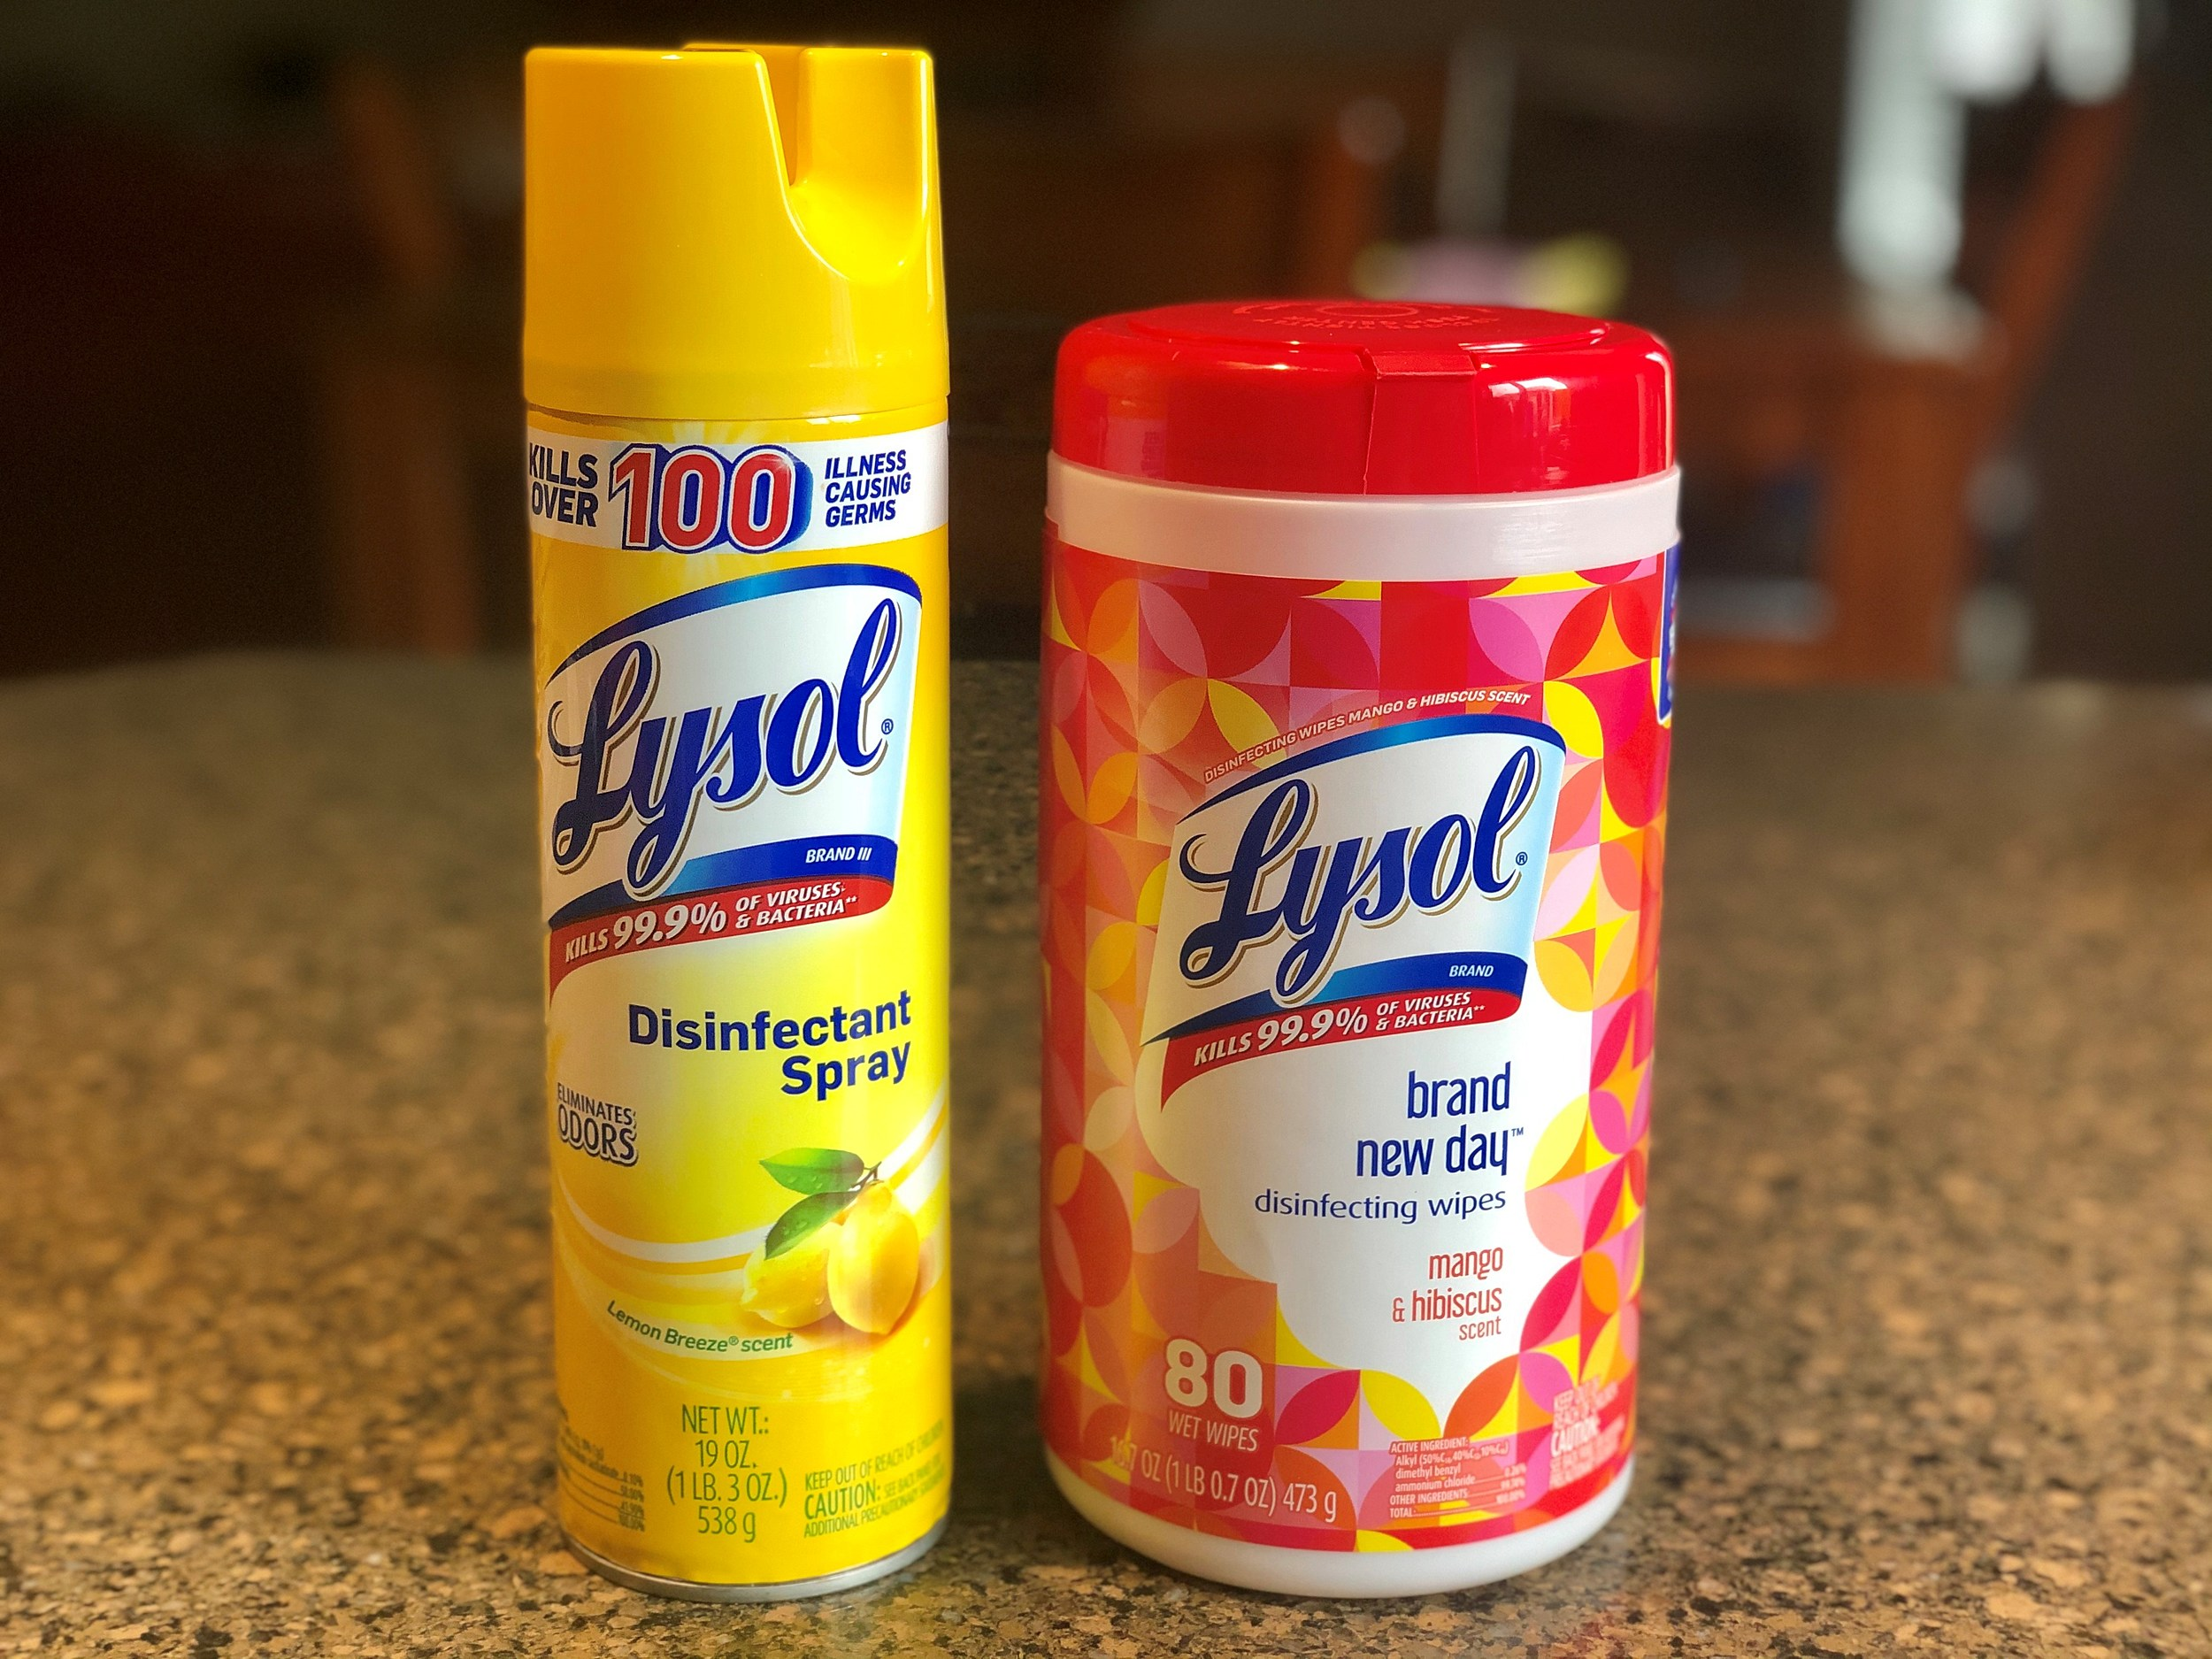 Don't Inject Disinfectants, Lysol Warns as Trump Raises Idea